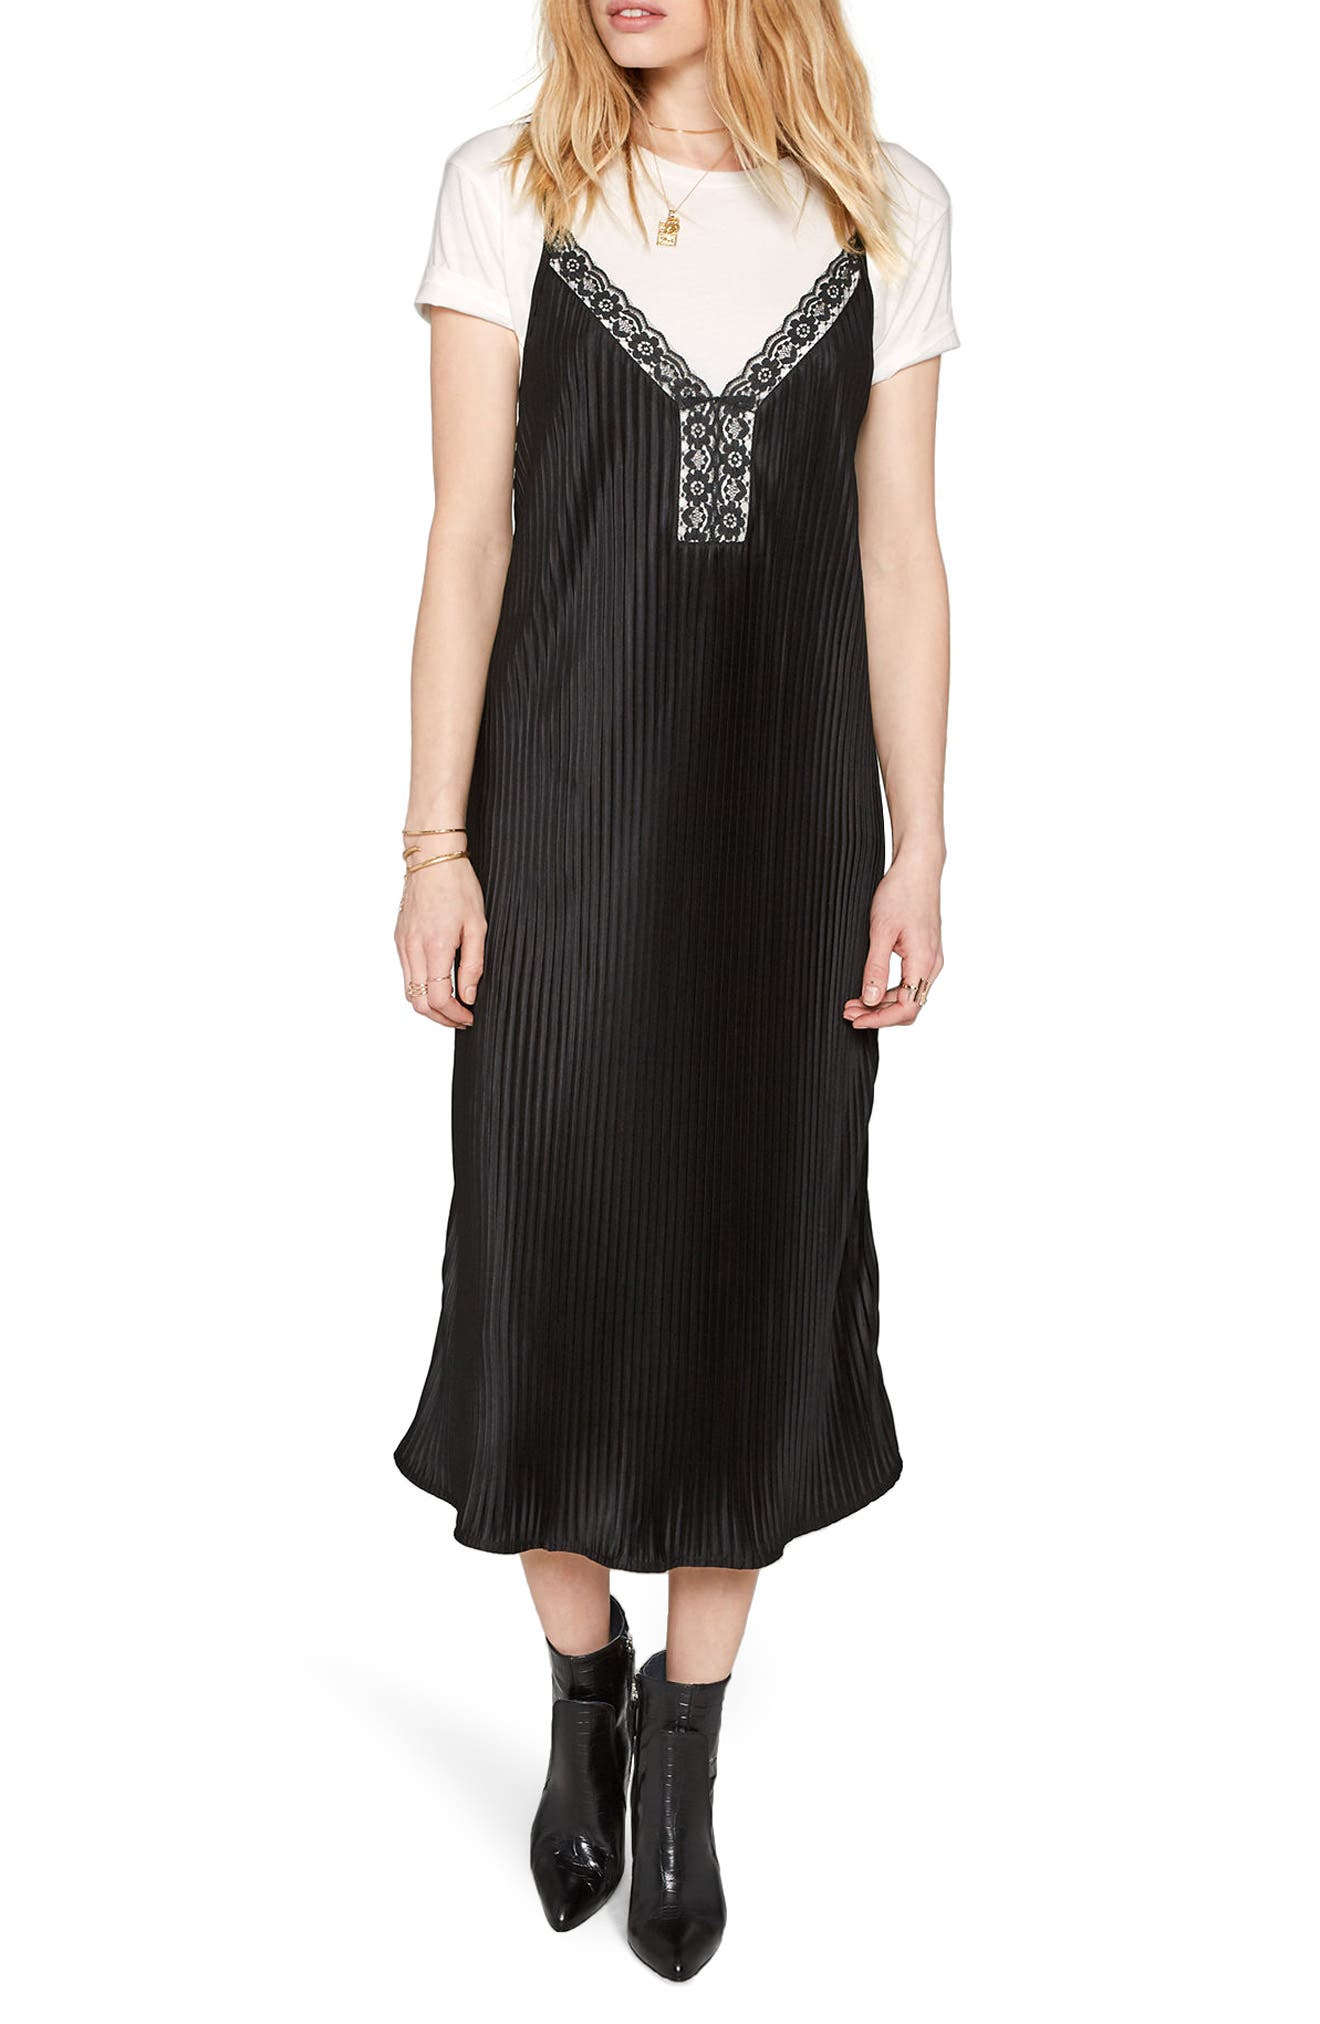 Sweet Surrender Slipdress,                             Main thumbnail 1, color,                             Black